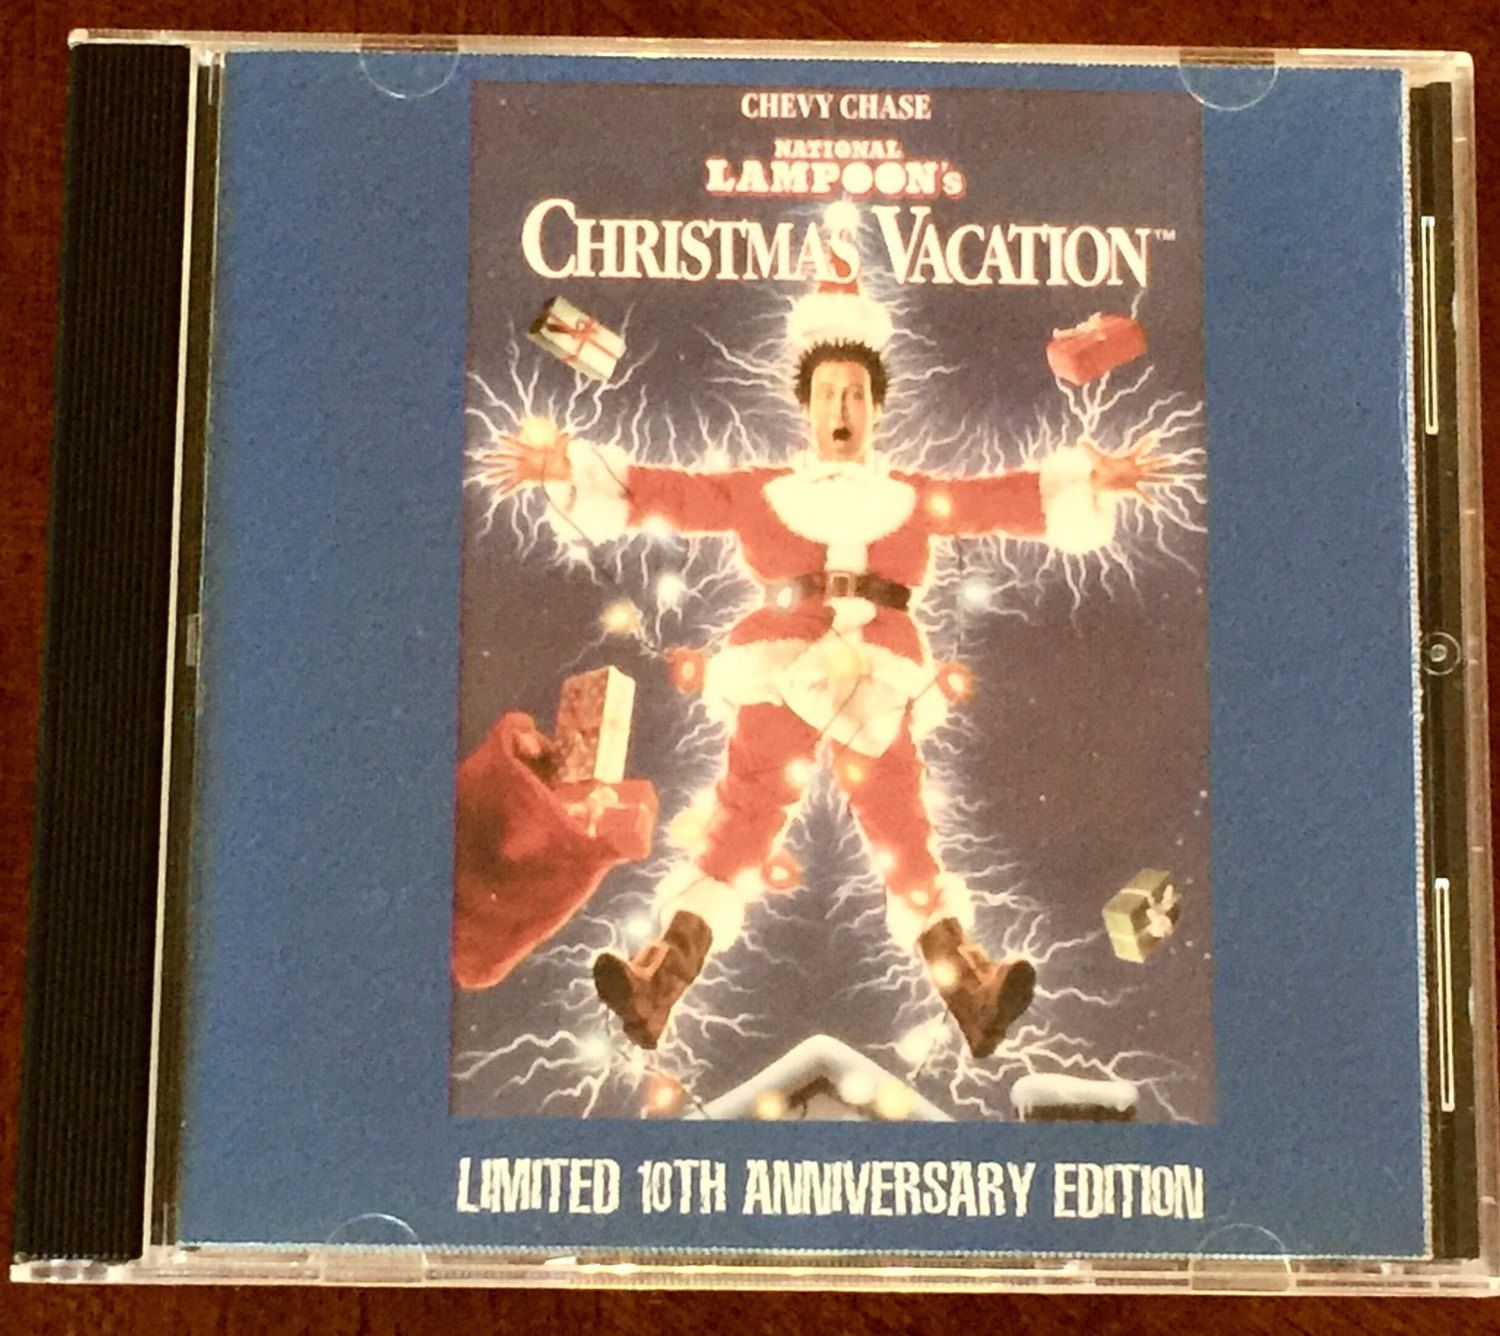 Christmas Vacation Soundtrack.National Lampoon Christmas Vacation Soundtrack Cd Rare